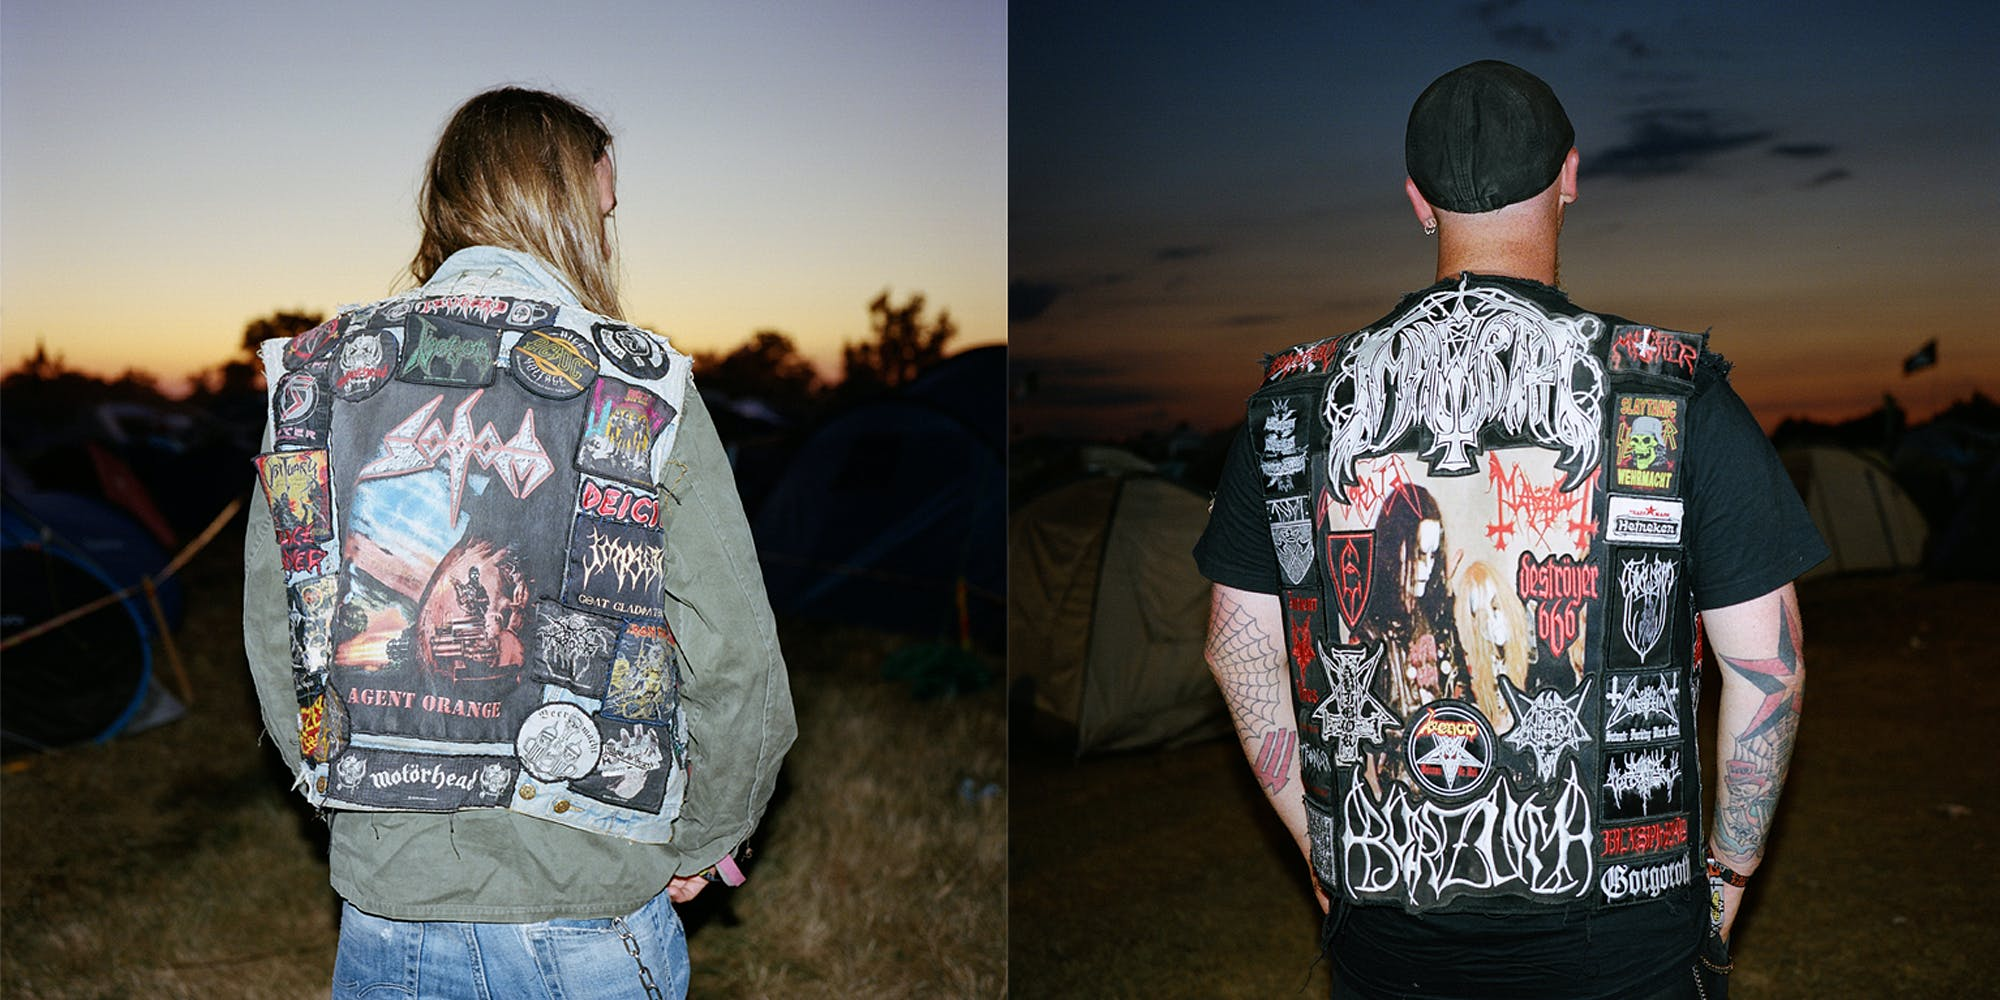 An Intimate Look At The Scars And Patches Of Mosh Pits At Metal Concerts